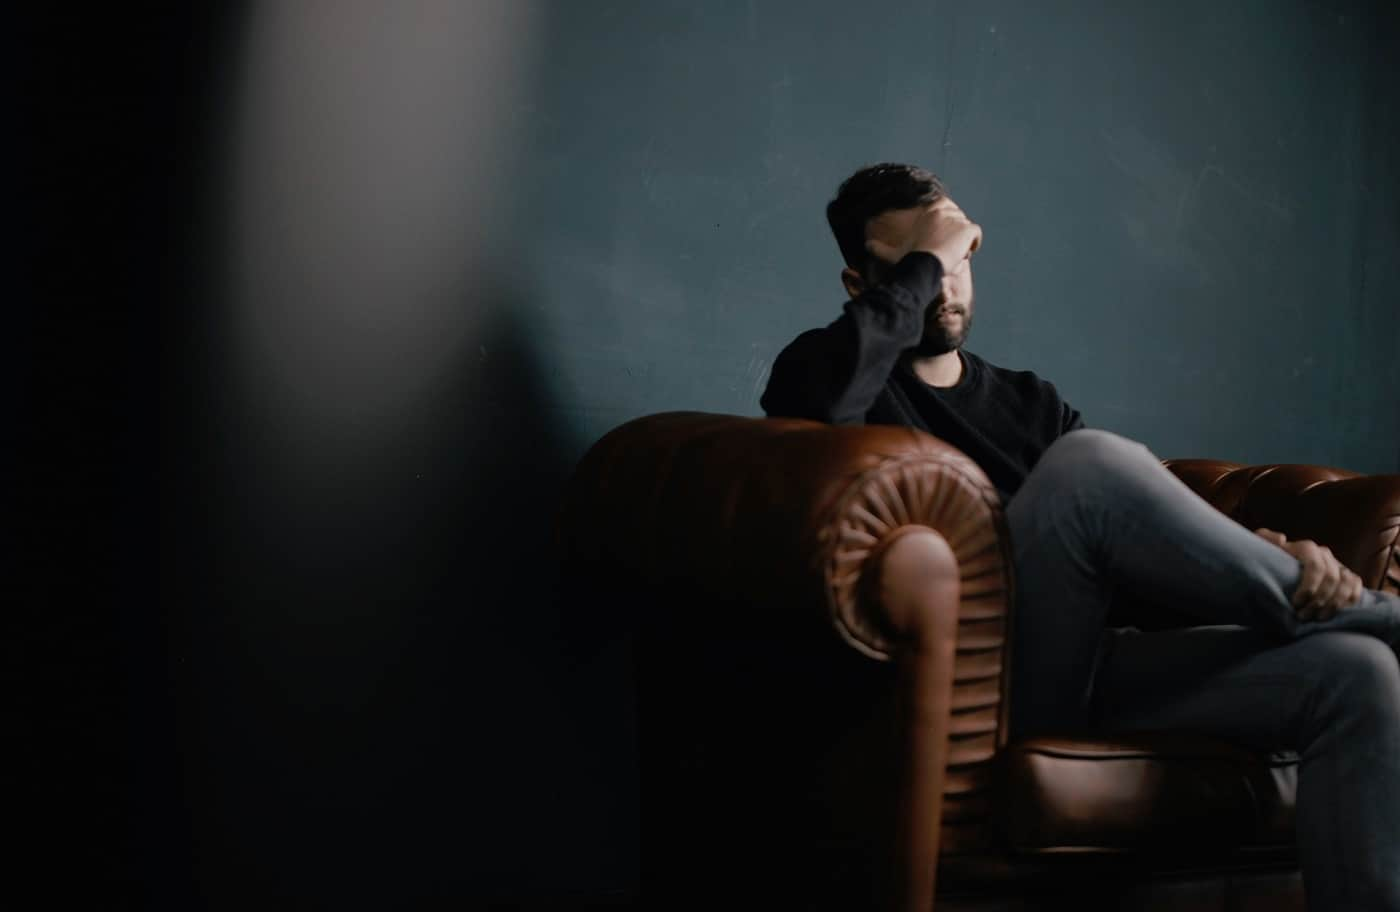 Man sitting on couch with headache. Image from Pixabay.